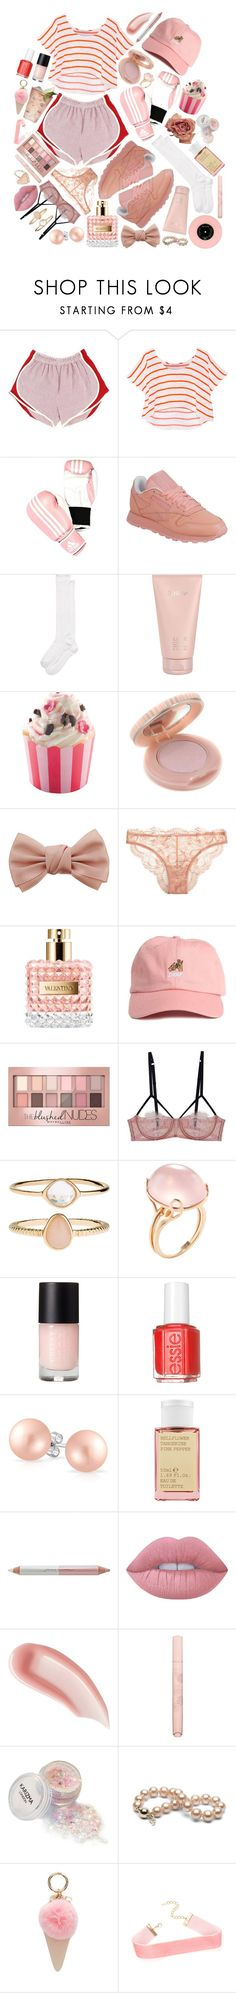 """@white&pink"" by issuri ❤ liked on Polyvore featuring Rebecca Minkoff, adidas, Reebok, Kate Spade, Lalique, Paul & Joe, Dorothy Perkins, La Perla, Margarita and Valentino"